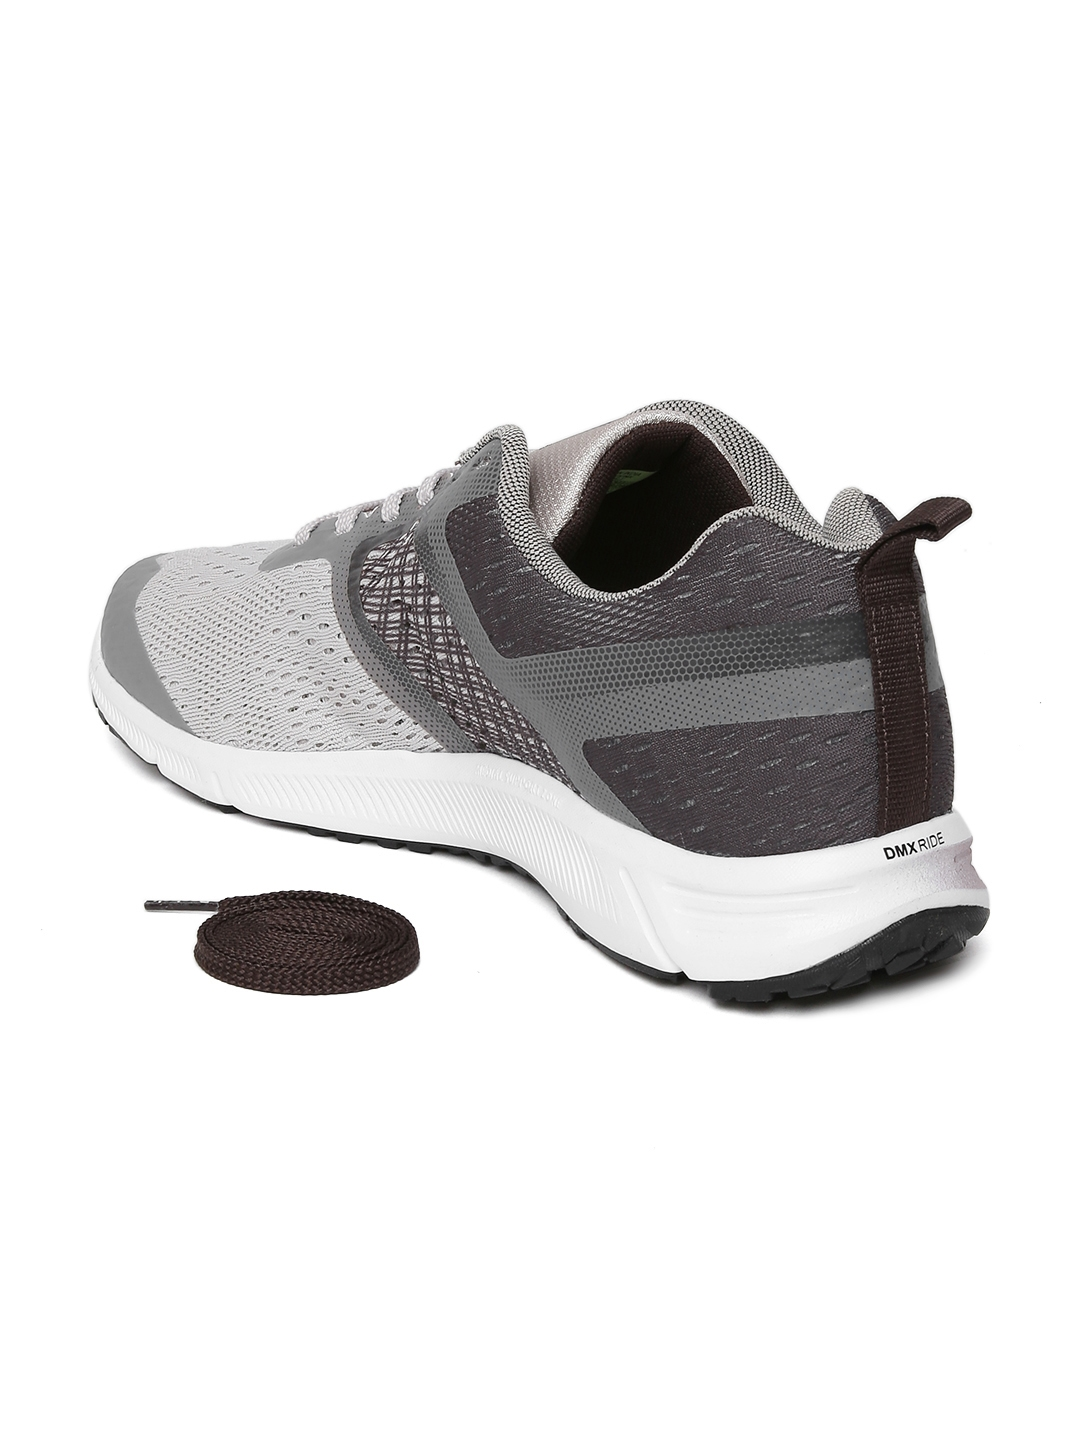 Buy Reebok Men Grey Ride One Running Shoes - Sports Shoes for Men ... c482f2848